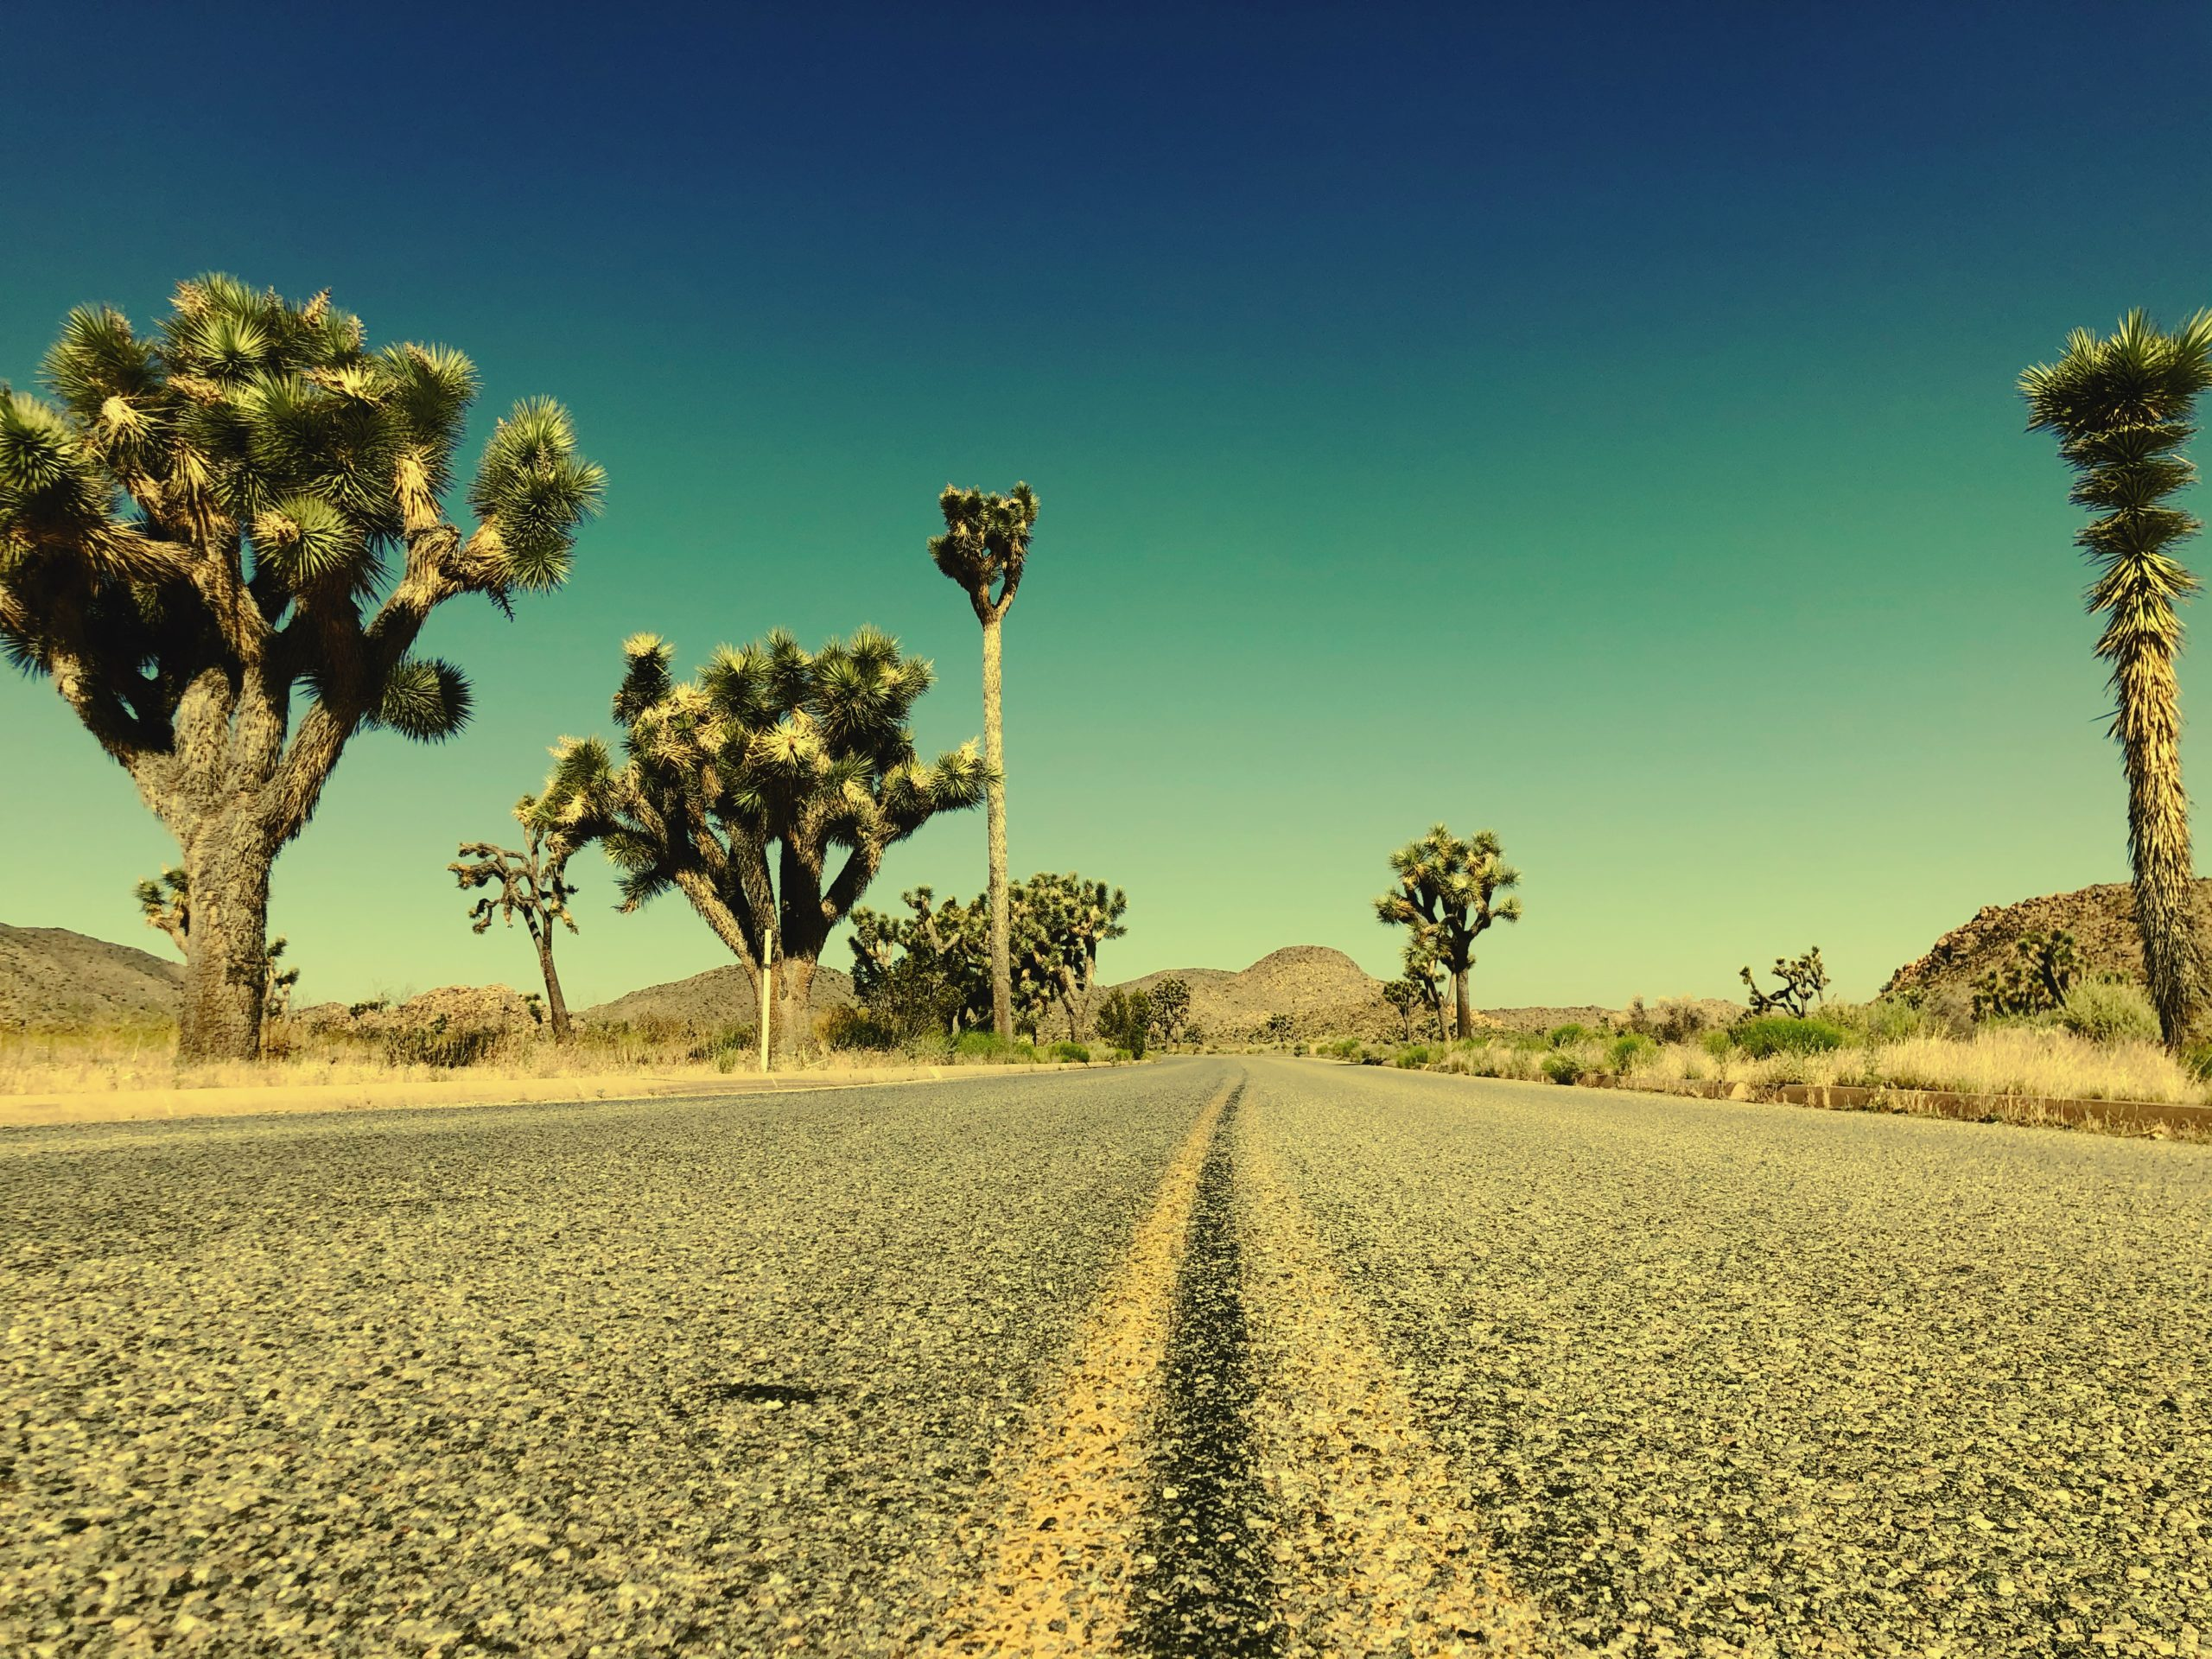 joshua-tree-national-park-climbing-camping-hiking-adventure-tour-road-artwork